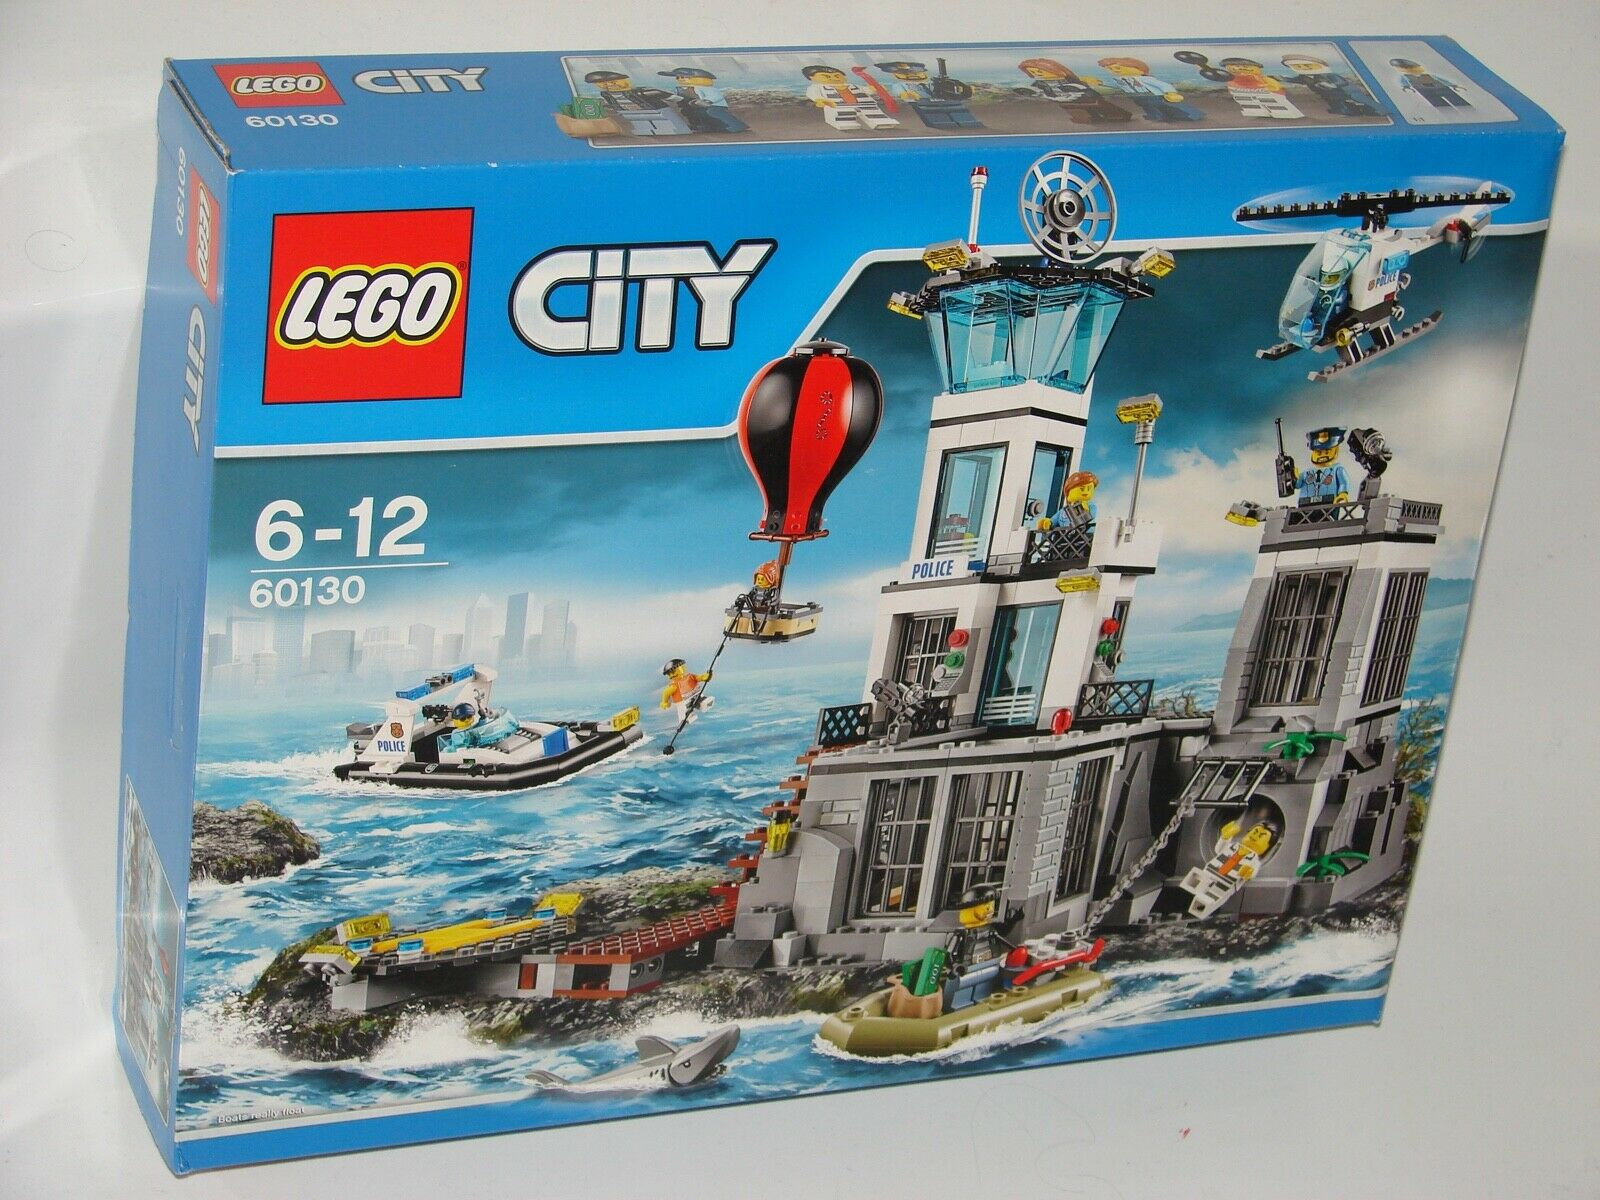 Lego ® City 60130 Prison Island nuevo 2tew_ New 2nd Choice water damage